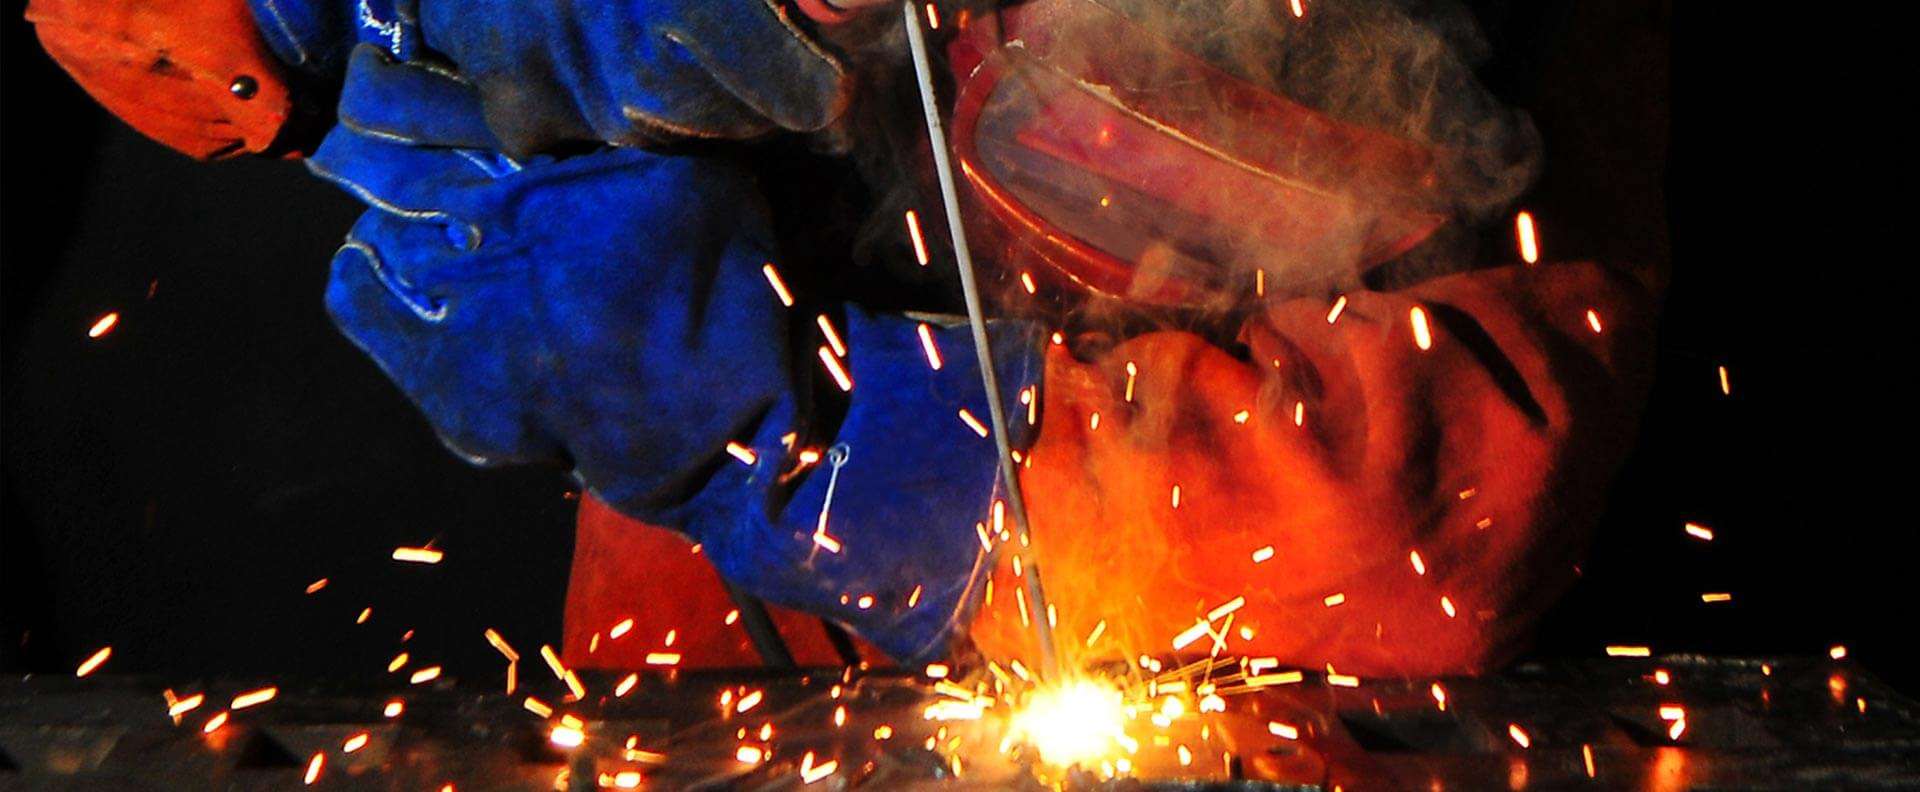 <h2>EFFICIENT WELDING</h2></br>WITH BETTER PENETRATION AND WELD INTEGRITY